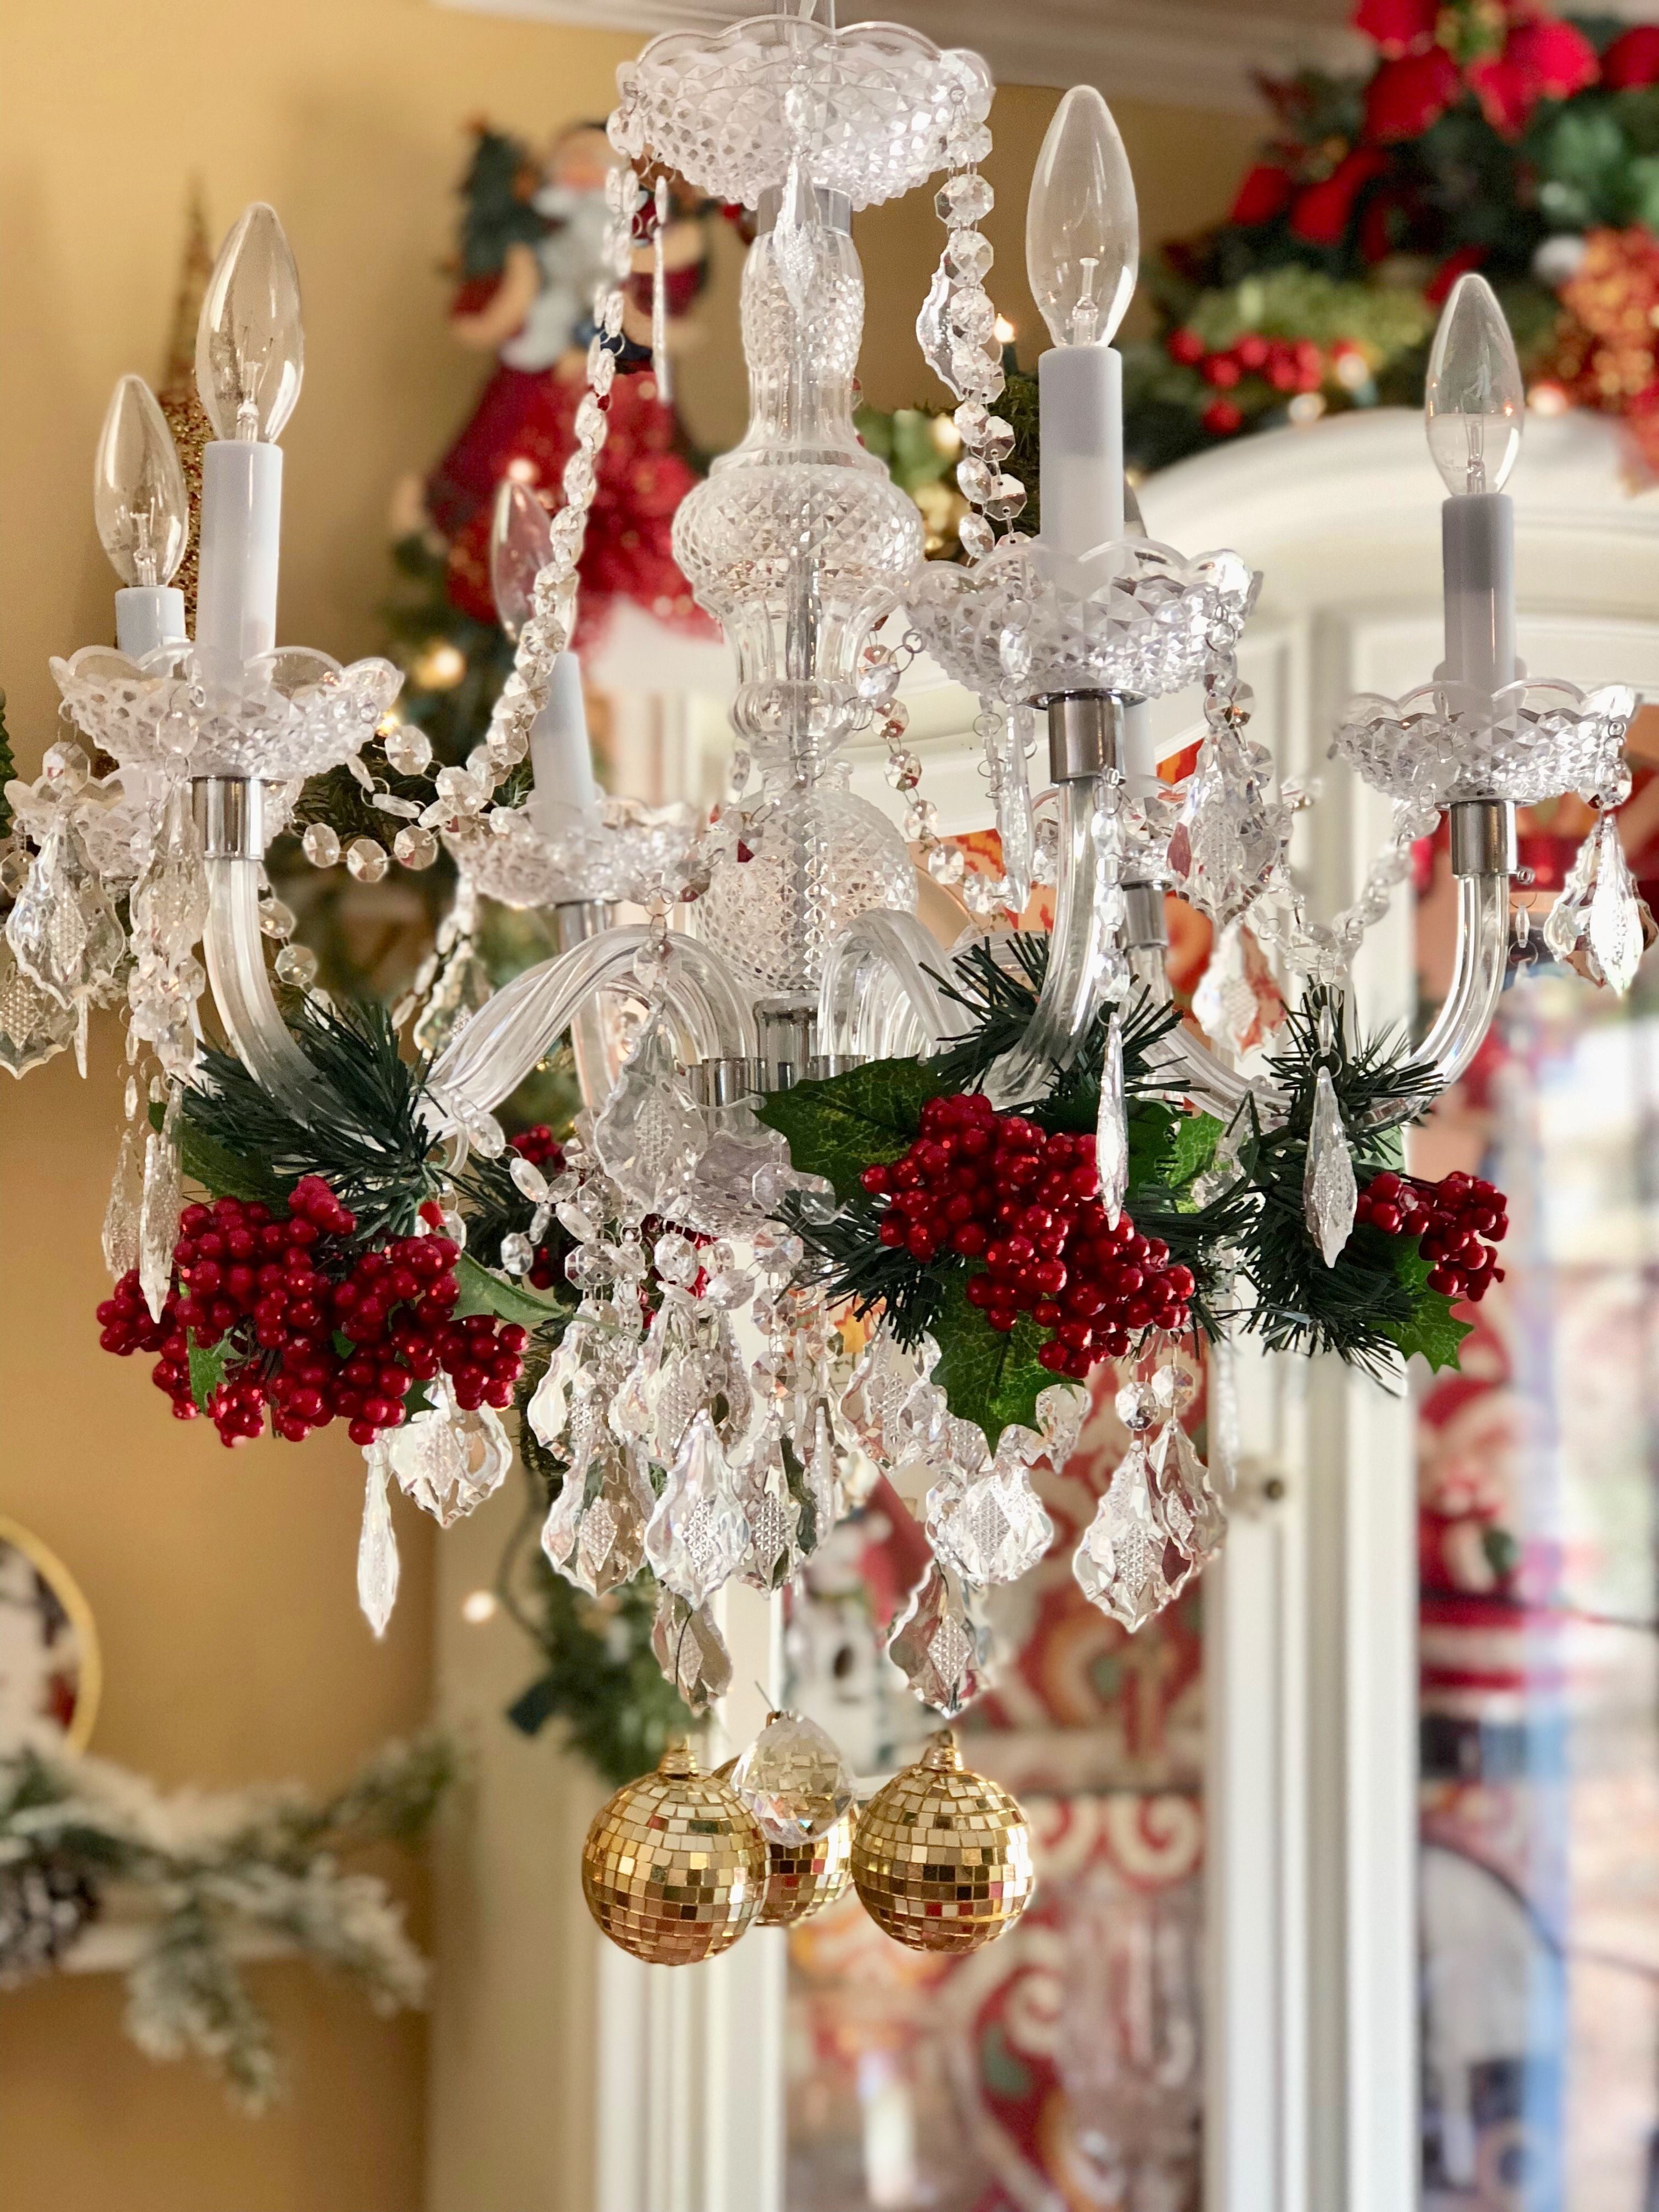 Stunning Holiday Decorating Ideas For Chandeliers Christmas